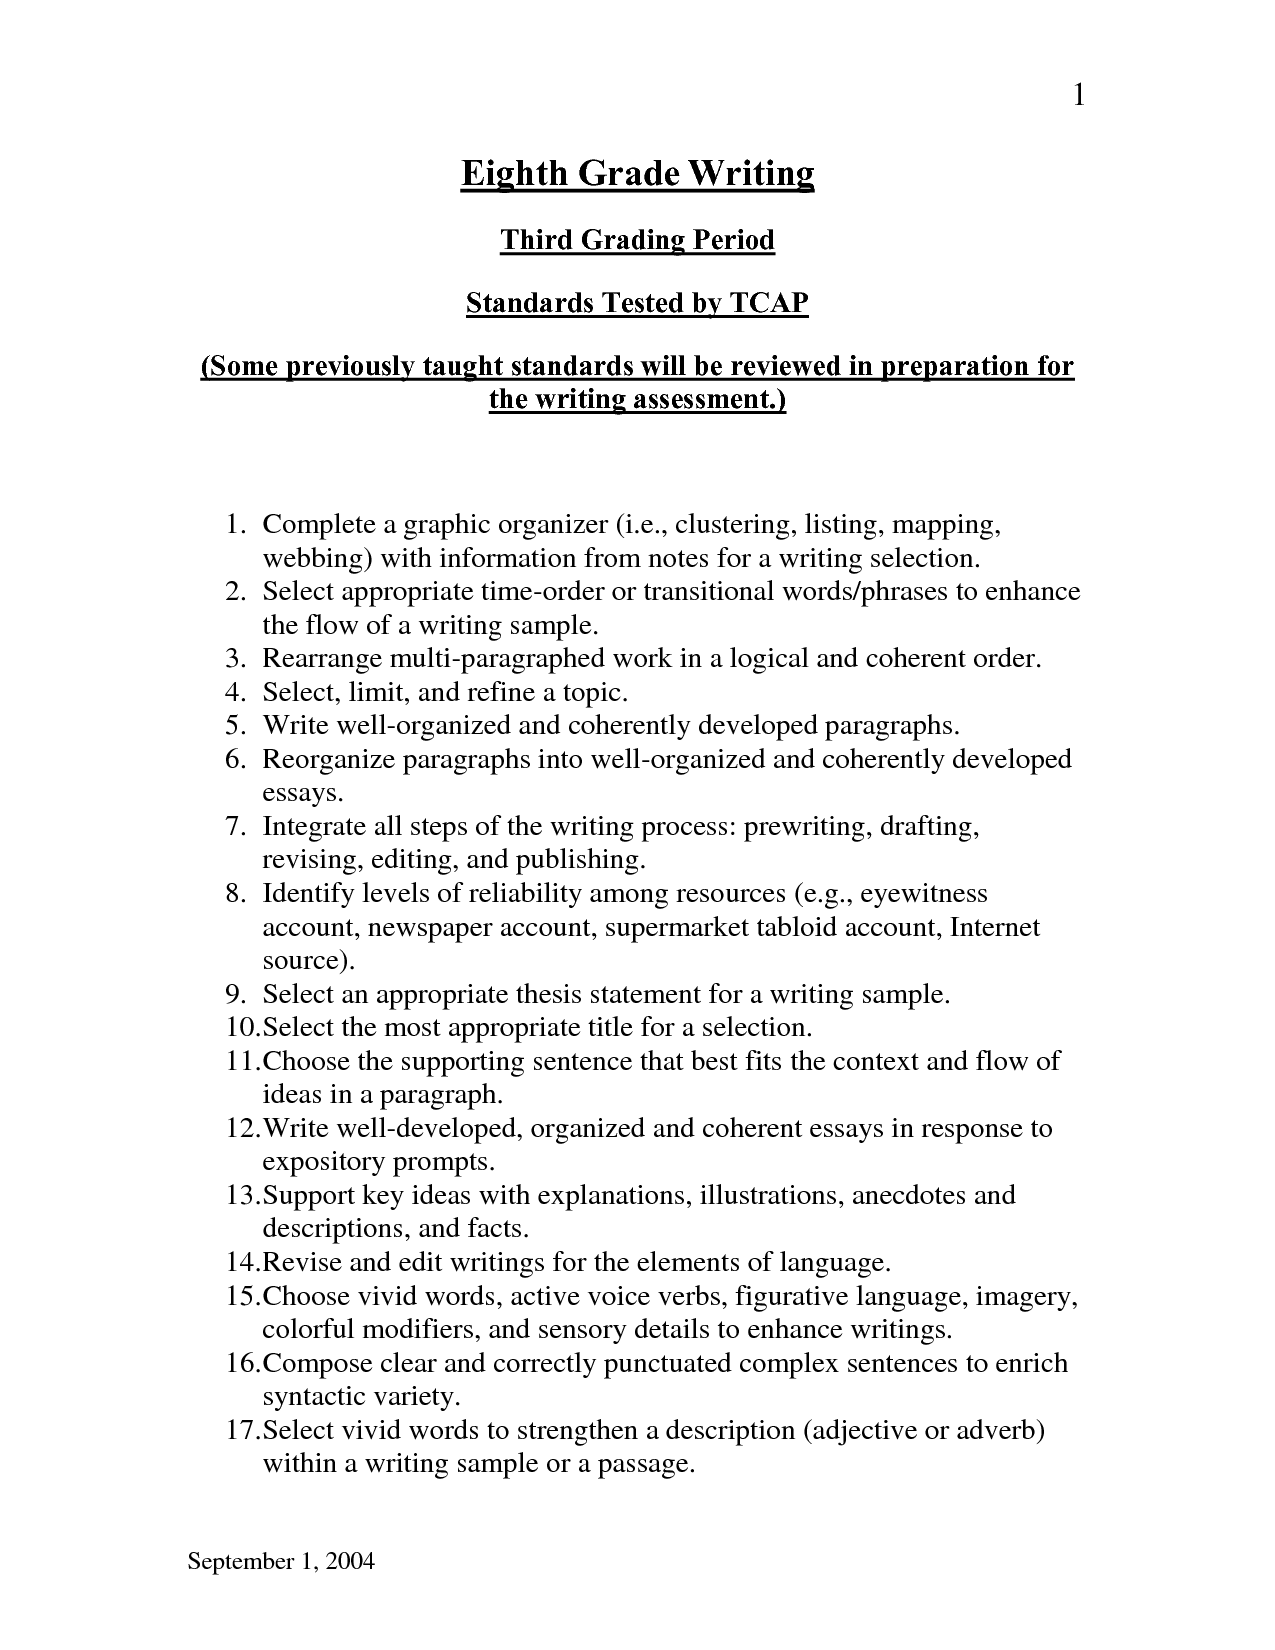 012 Essay Example What Is An Expository Writing Prompts For High School 1088622 Magnificent Gcu 5th Grade 4th Full